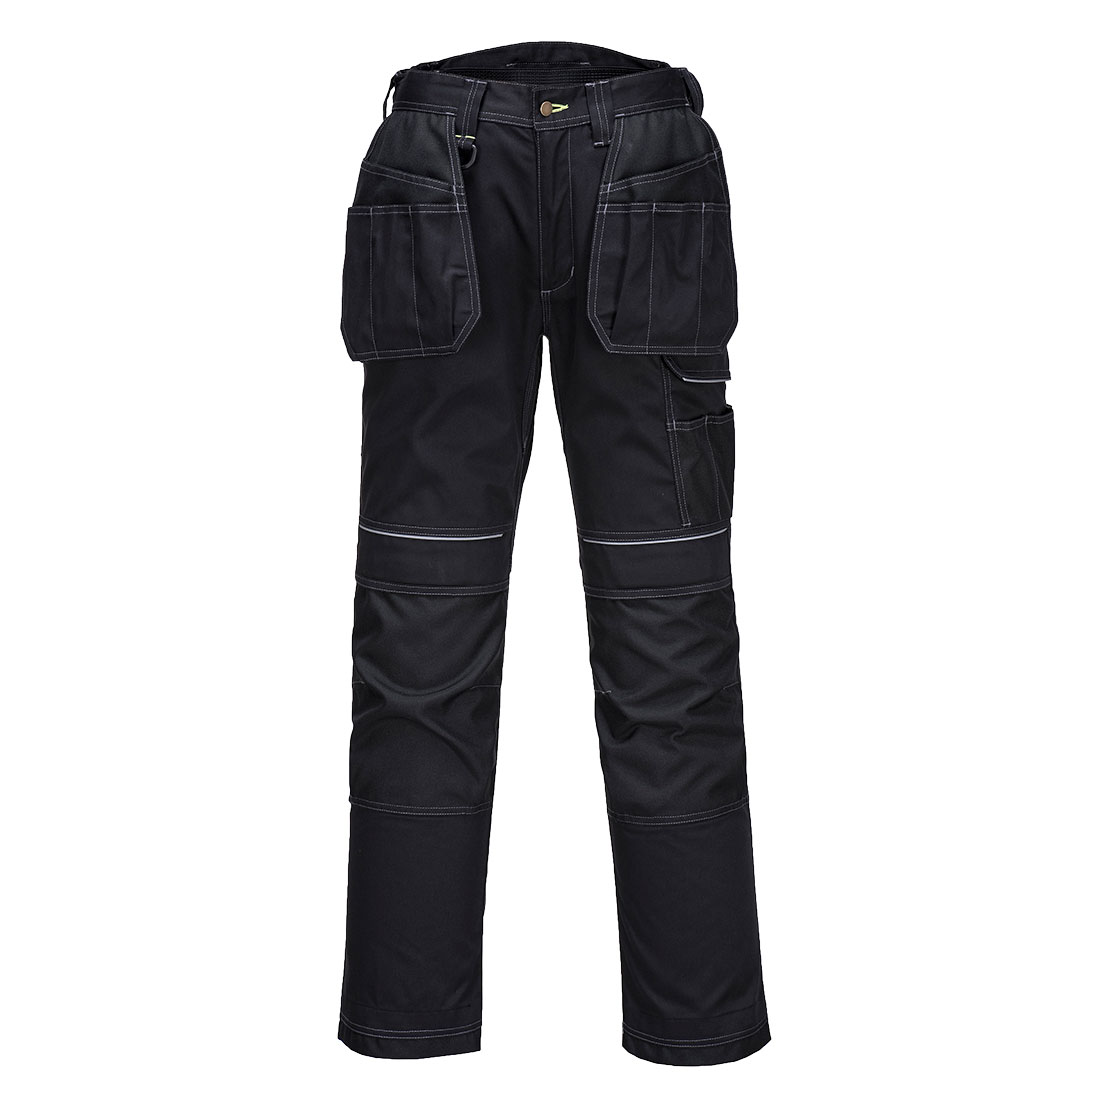 PW3 Holster Work Trousers Black 34S